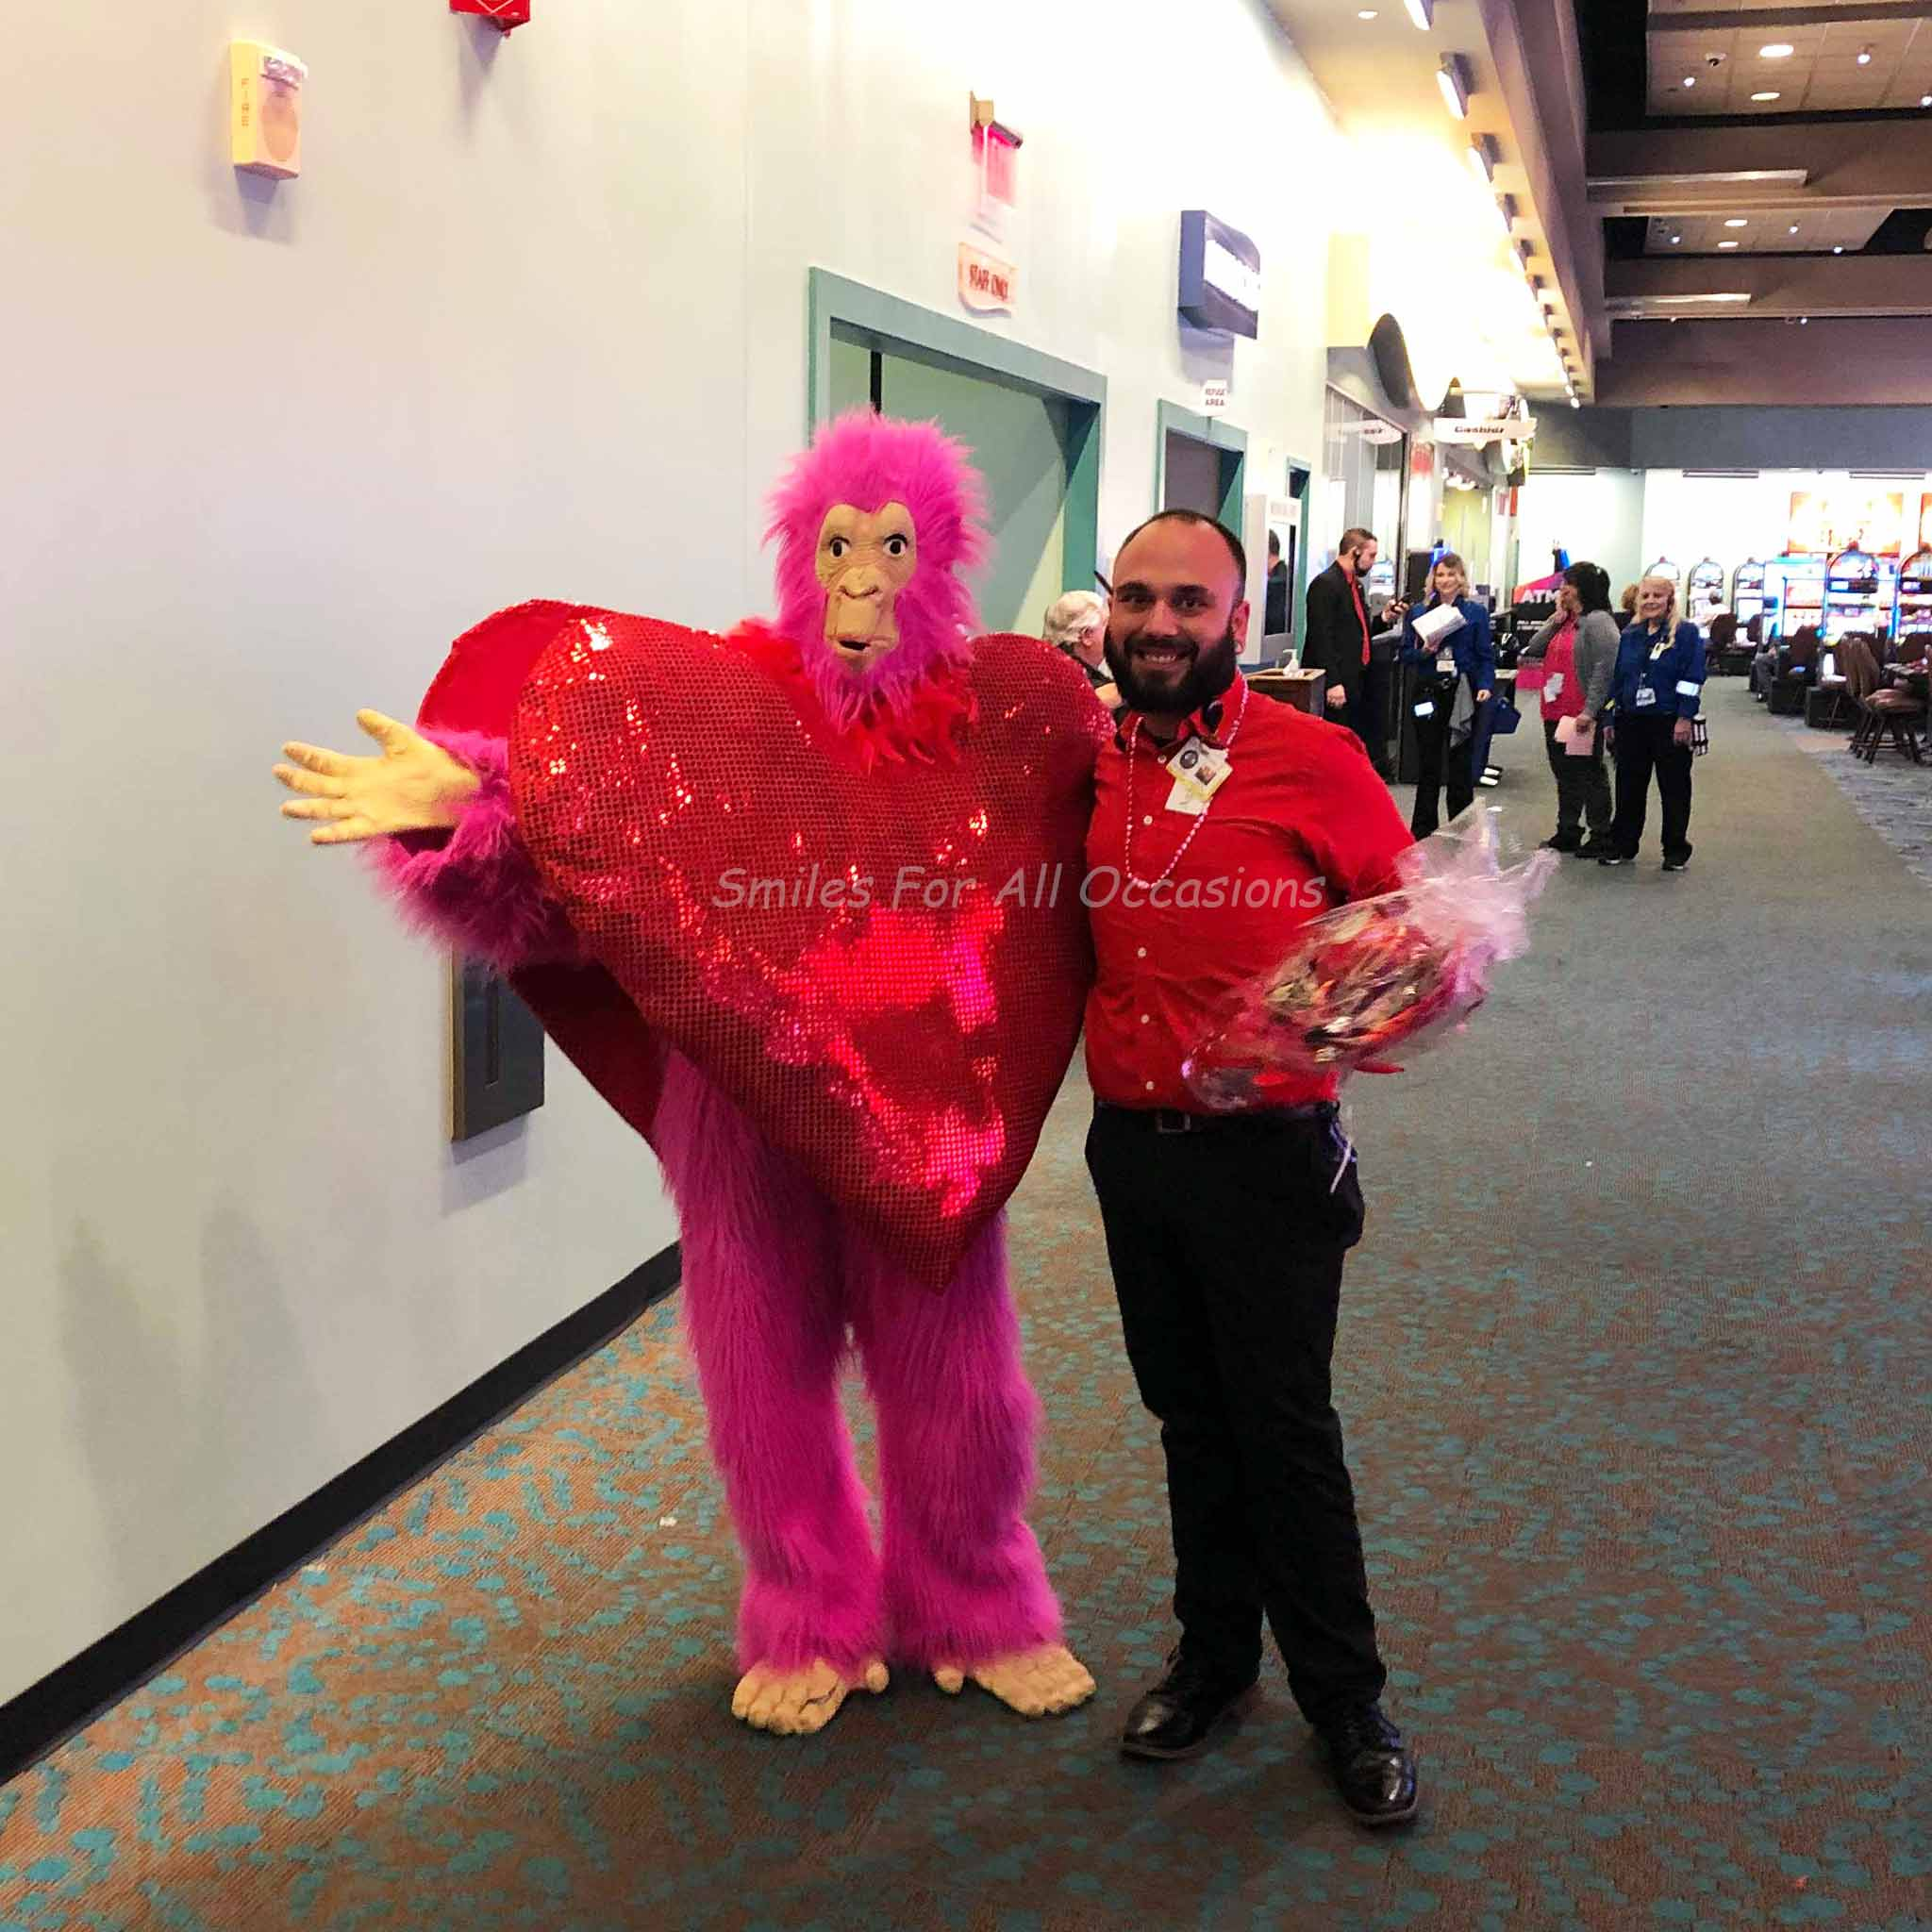 Pink Gorilla with Large Red Heart on Chest Standing with a Man at Casino